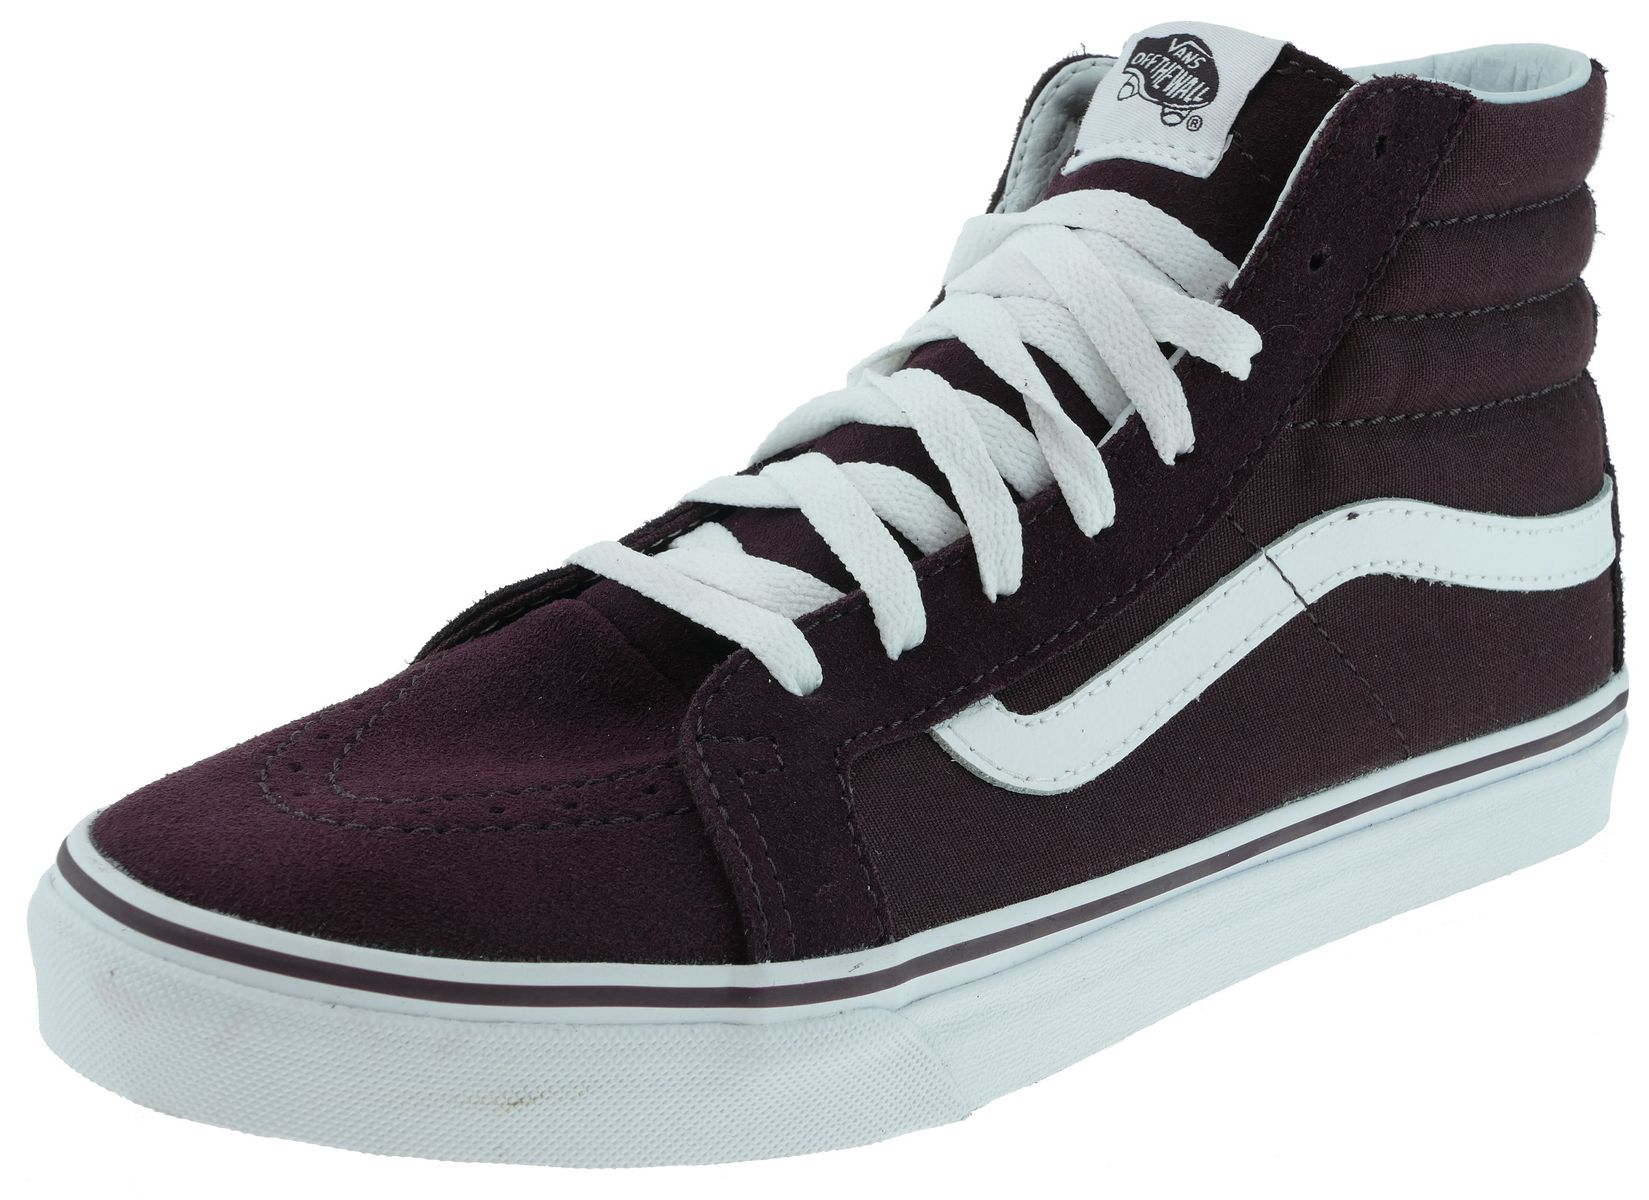 5d4a4b9c4d Vans SK8-HI SLIM Classics iron brown true white